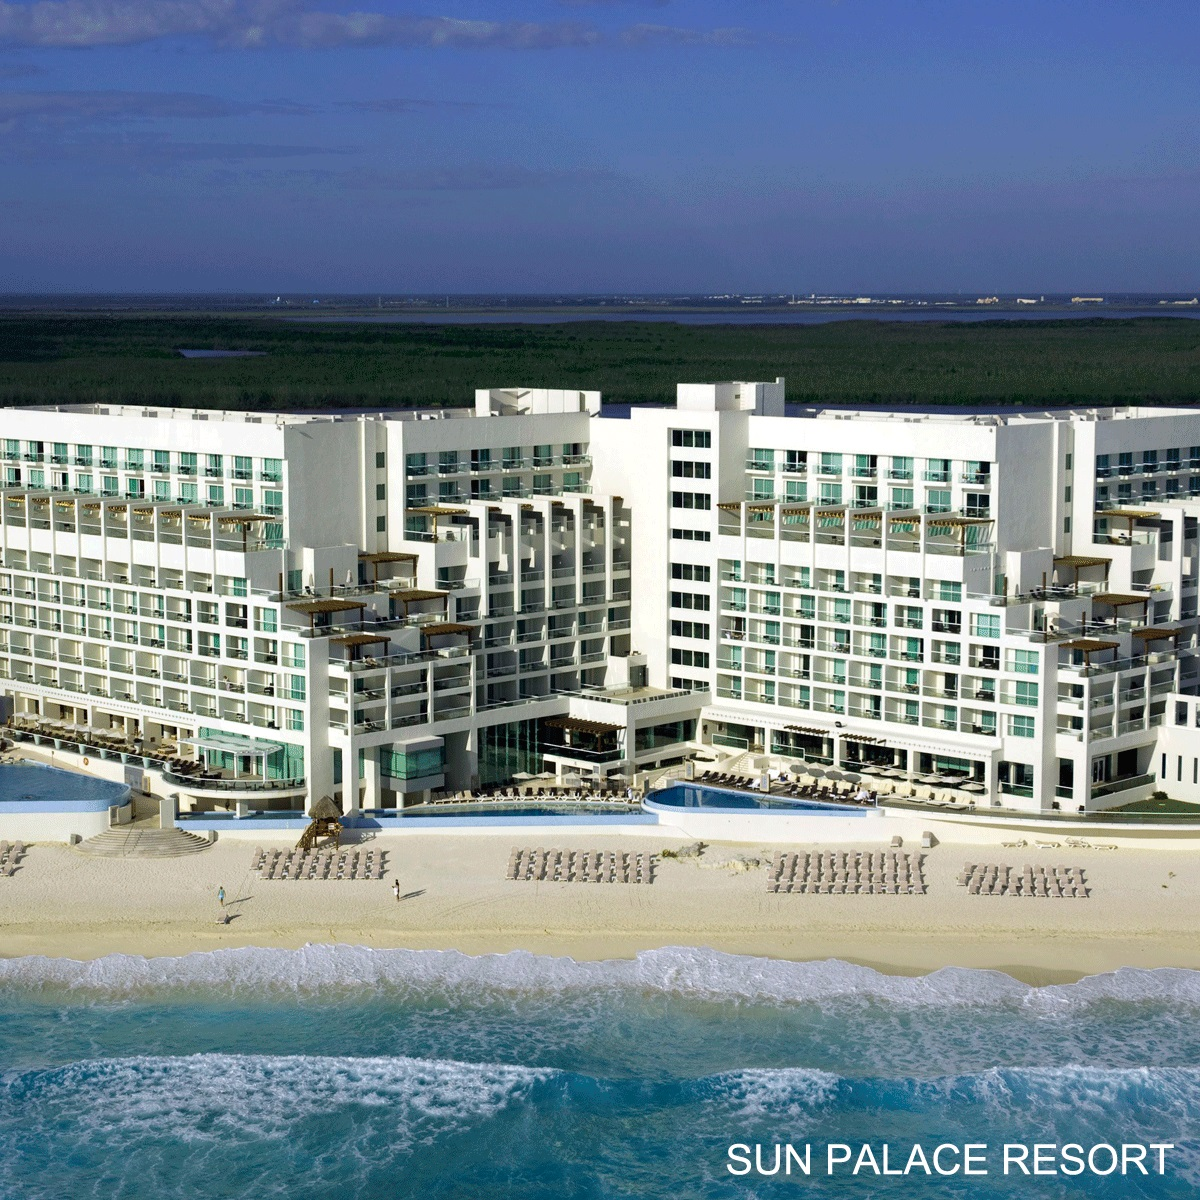 SUN PALACE RESORT